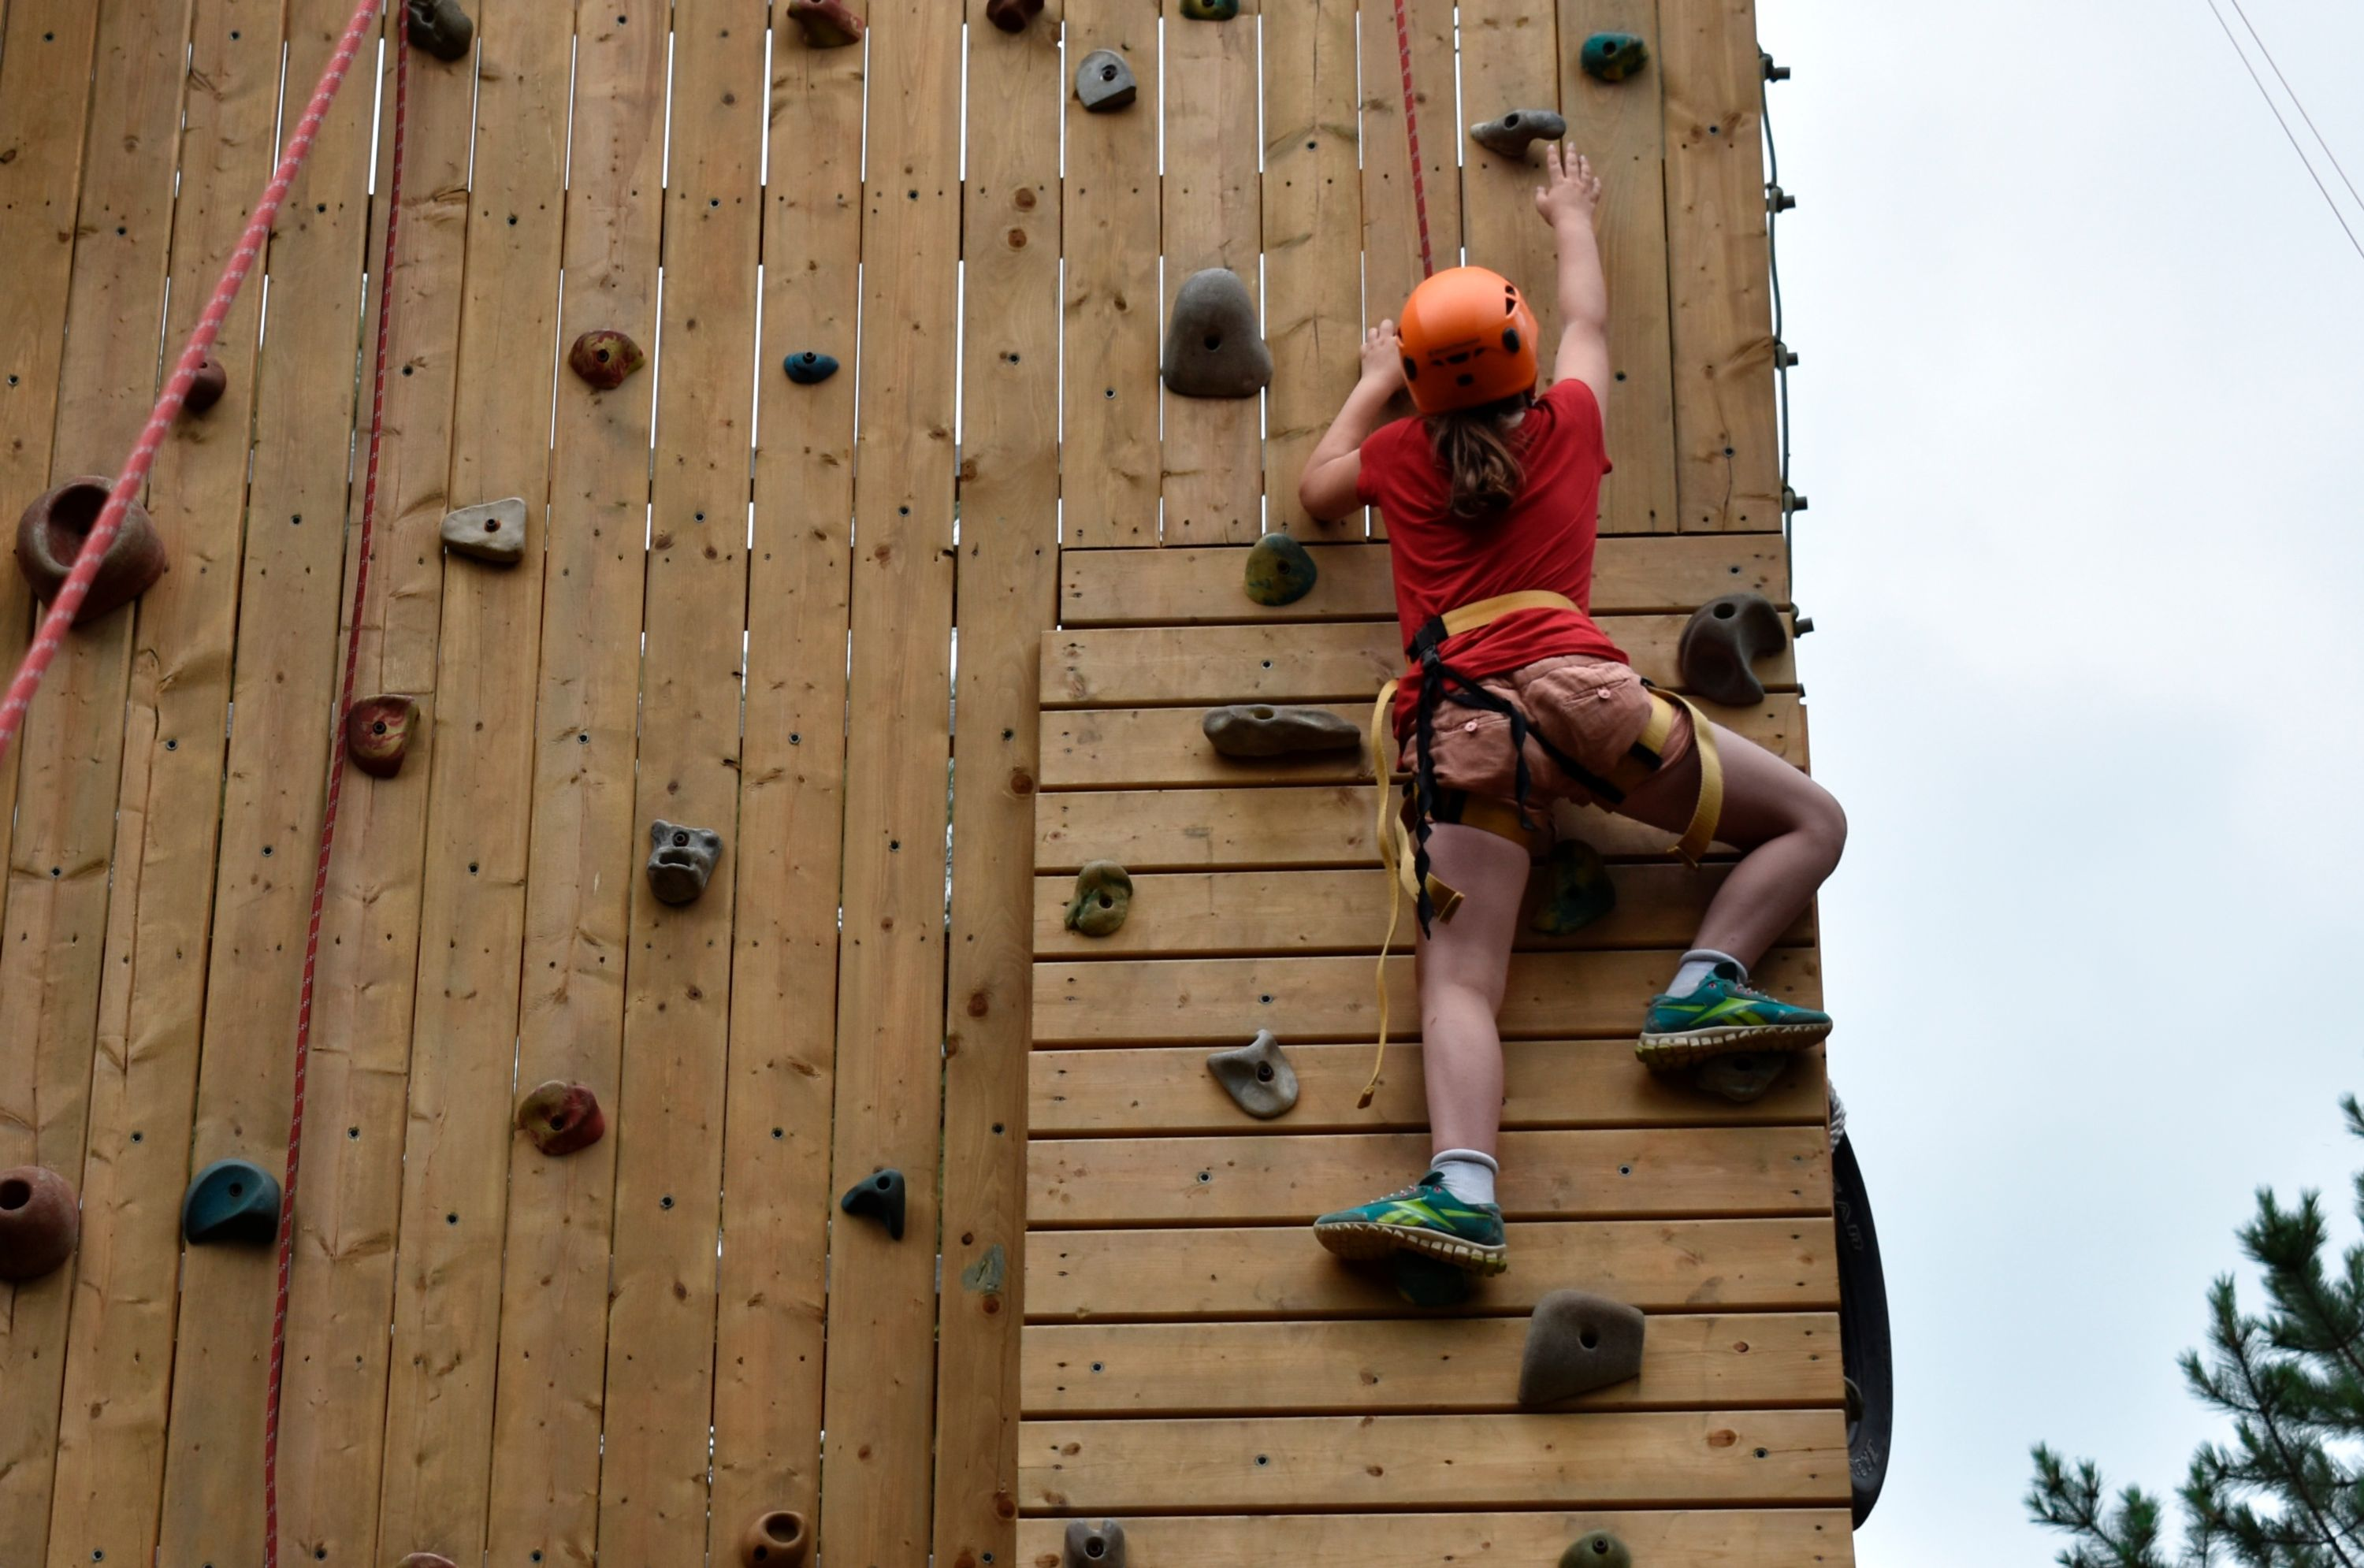 camper climbing on outside rock wall at christian adventure summer camp in haliburton, ontario